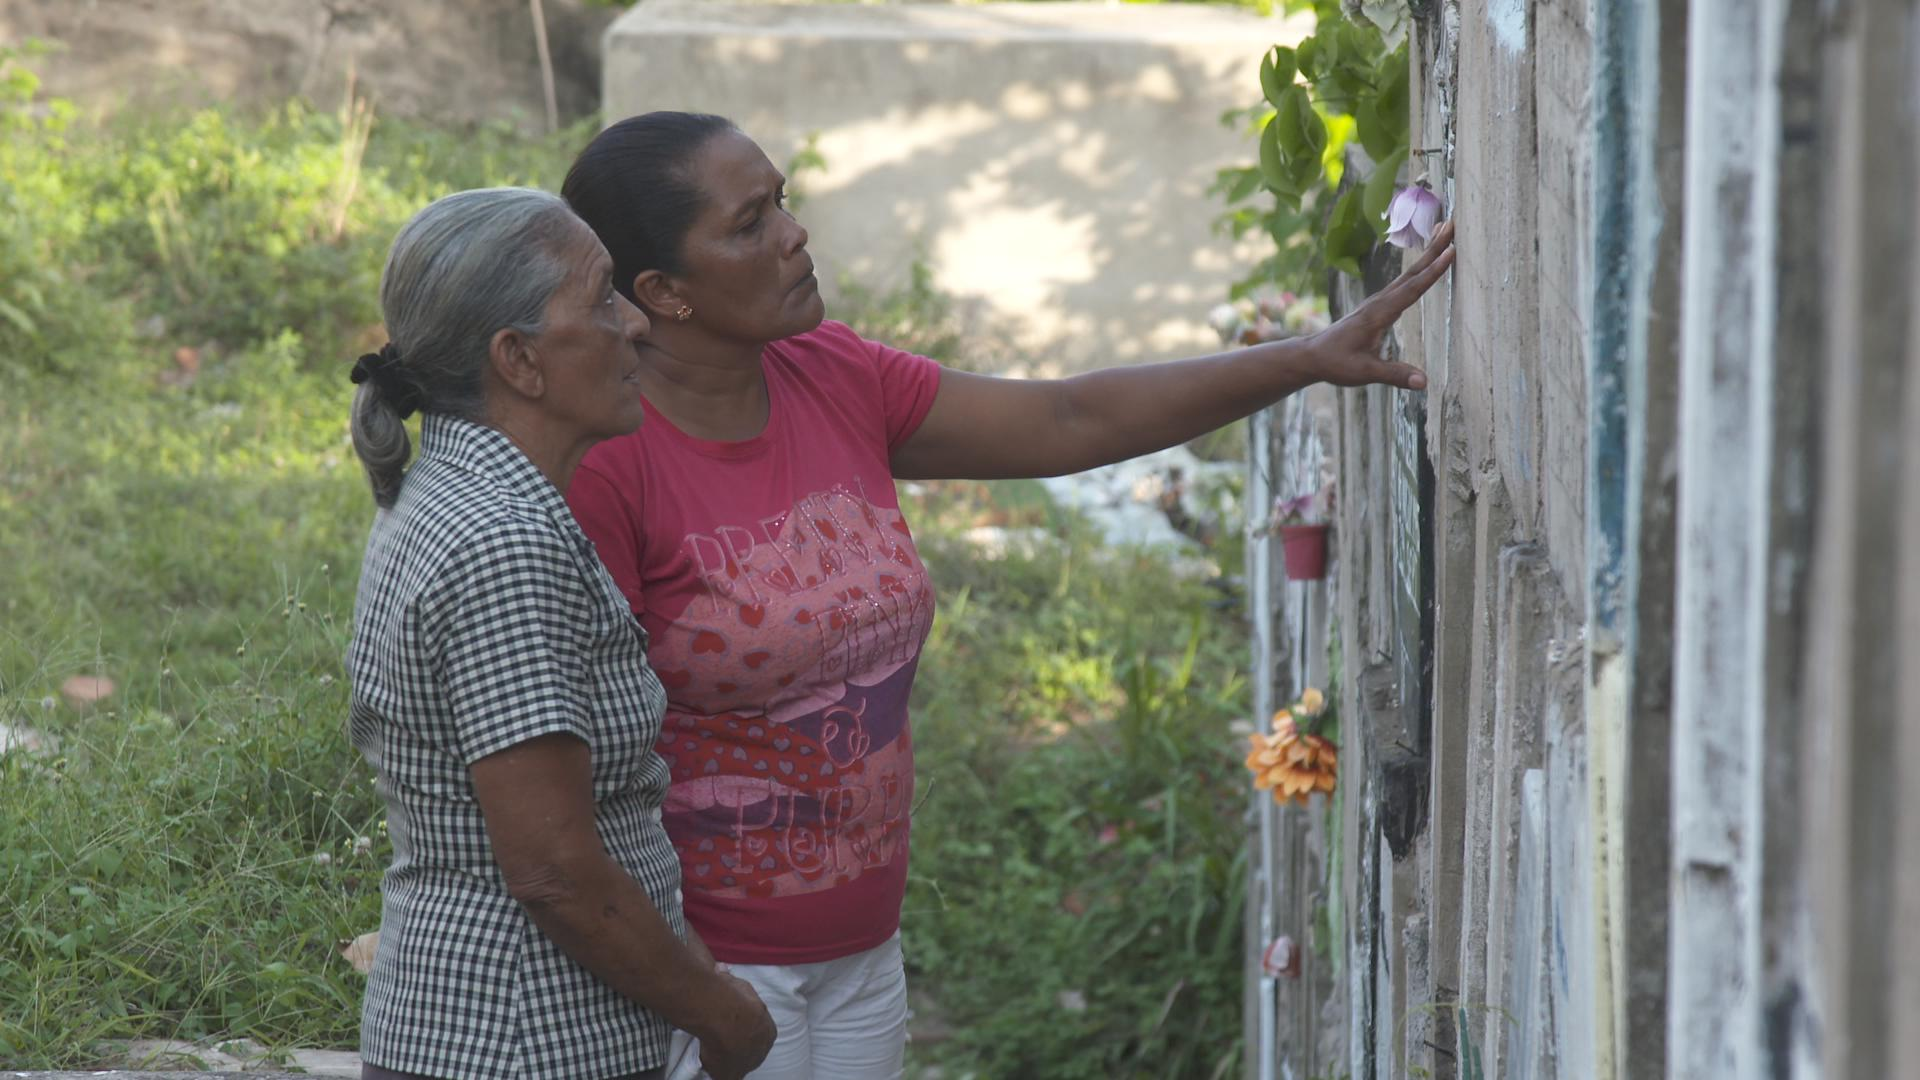 Dilia with Maribel visiting the graves of her children